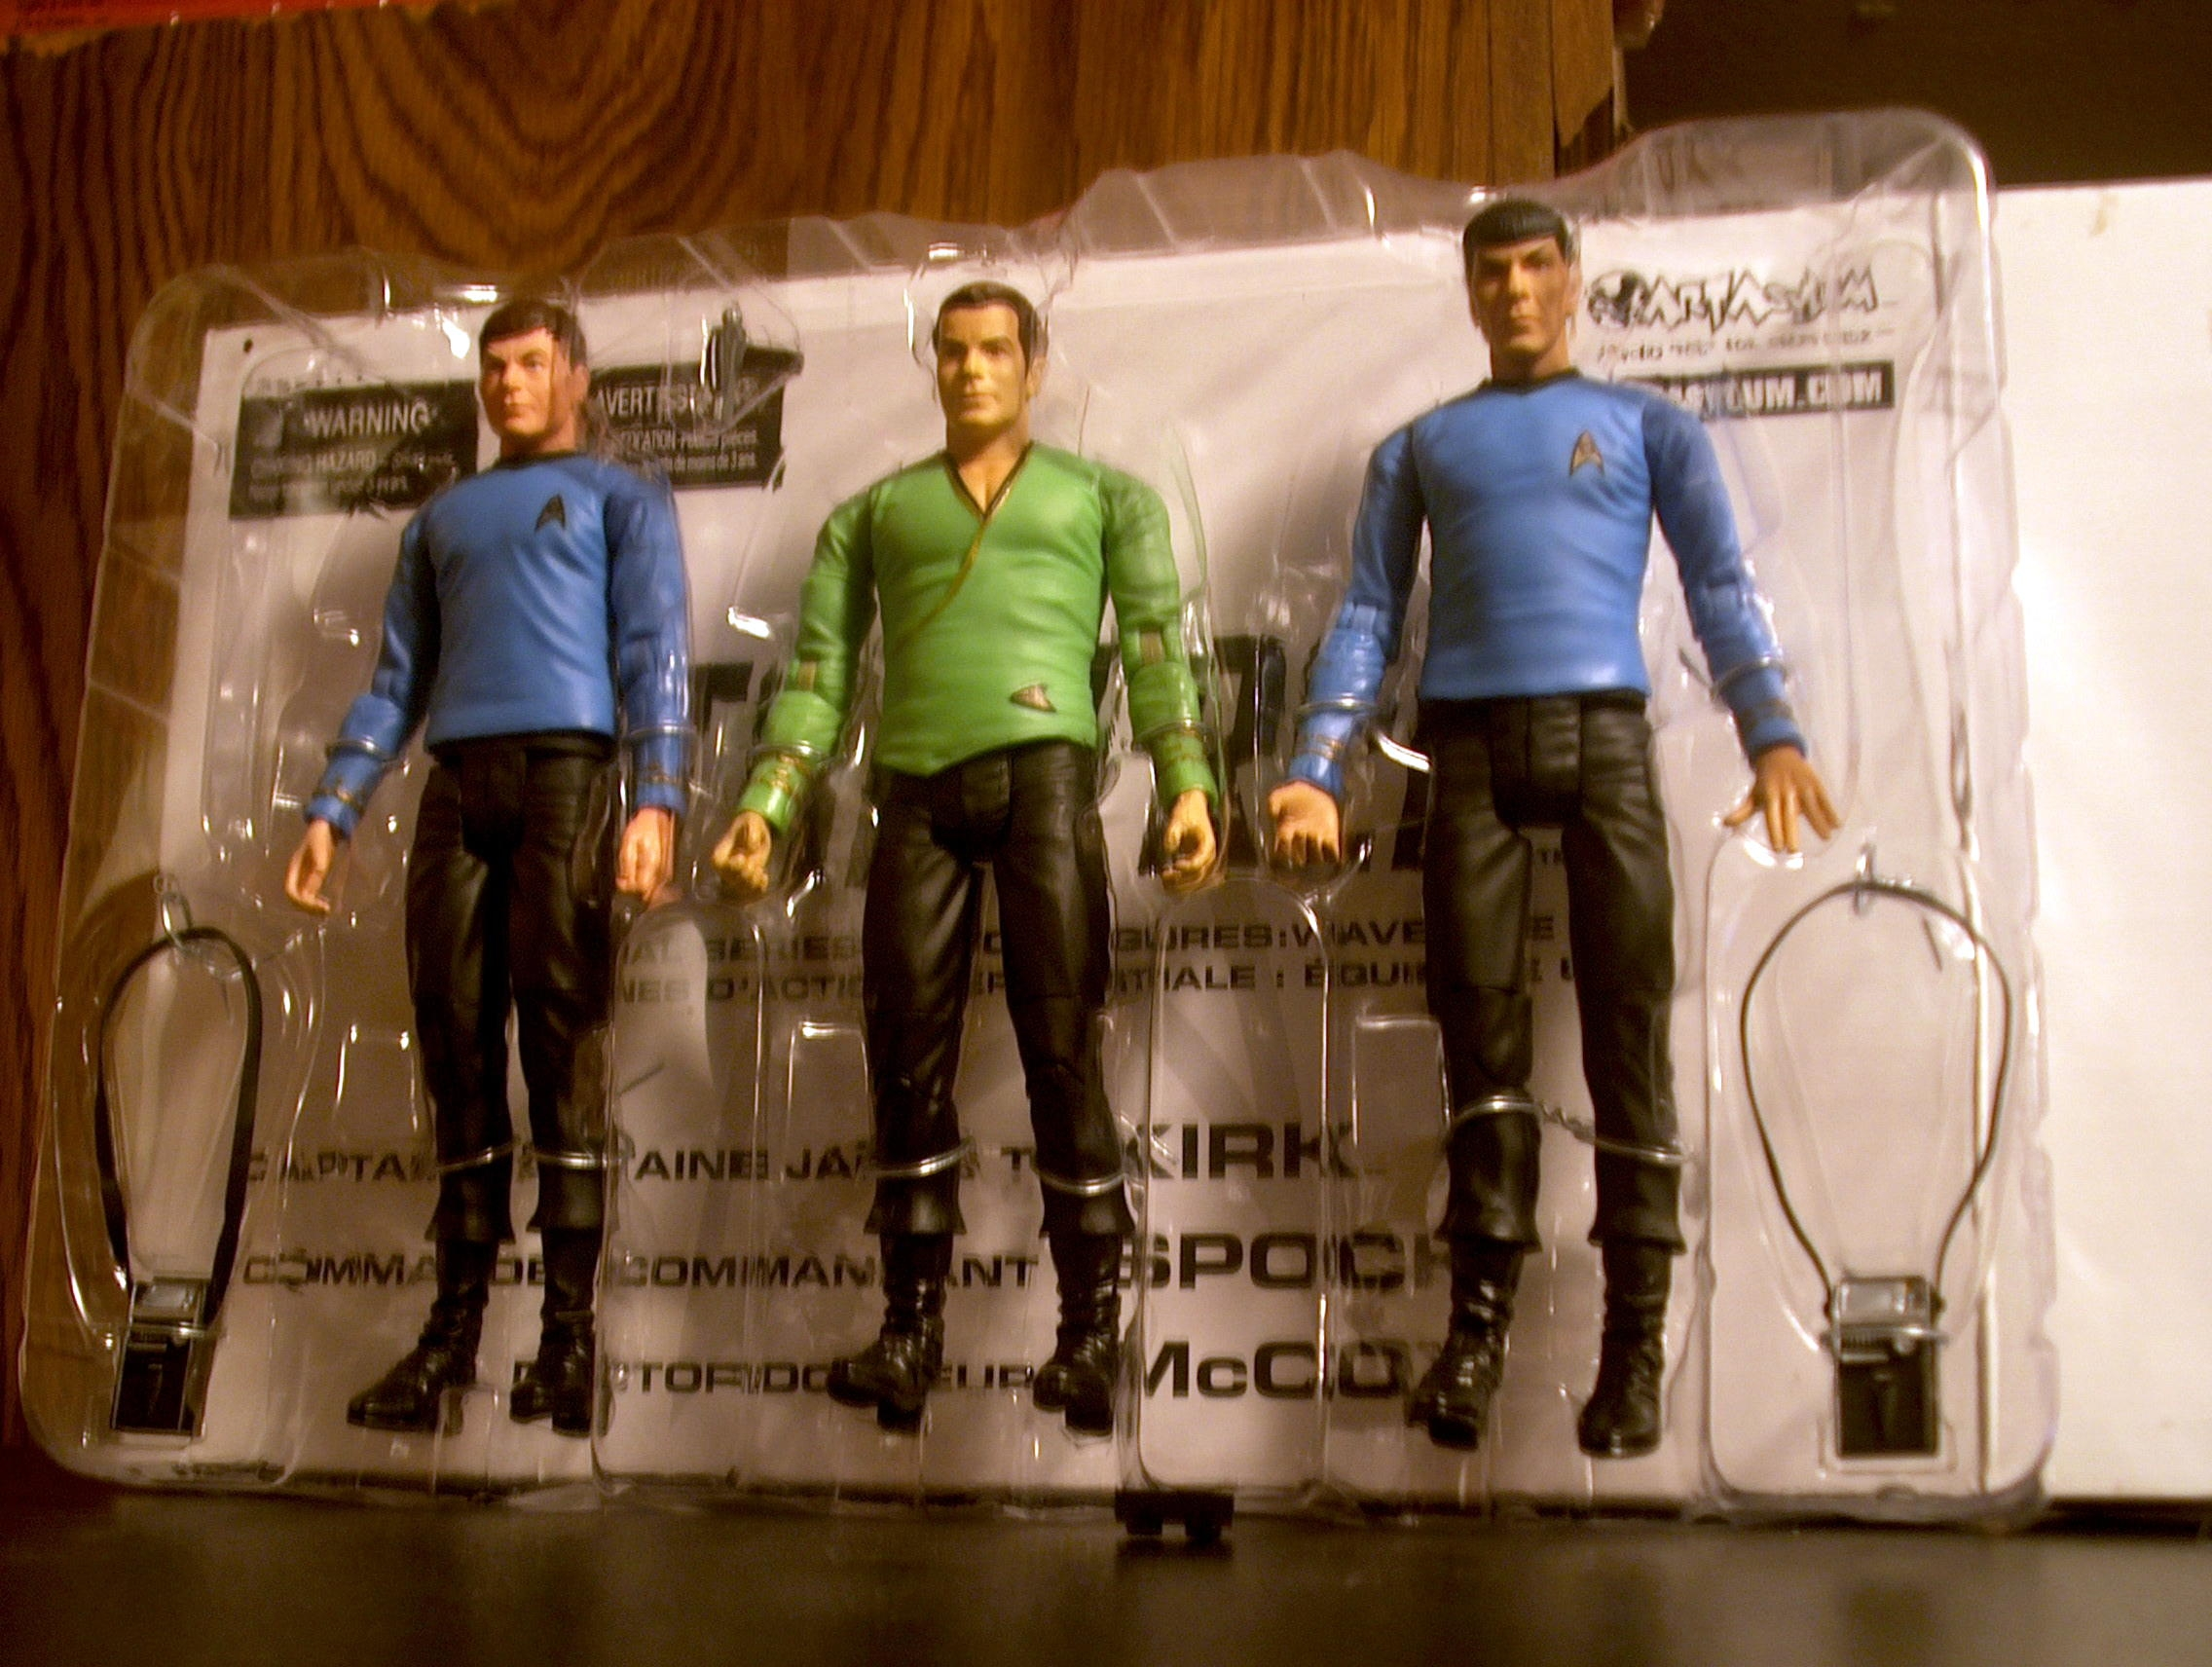 Captain James T. Kirk, Commander Spock, Doctor McCoy